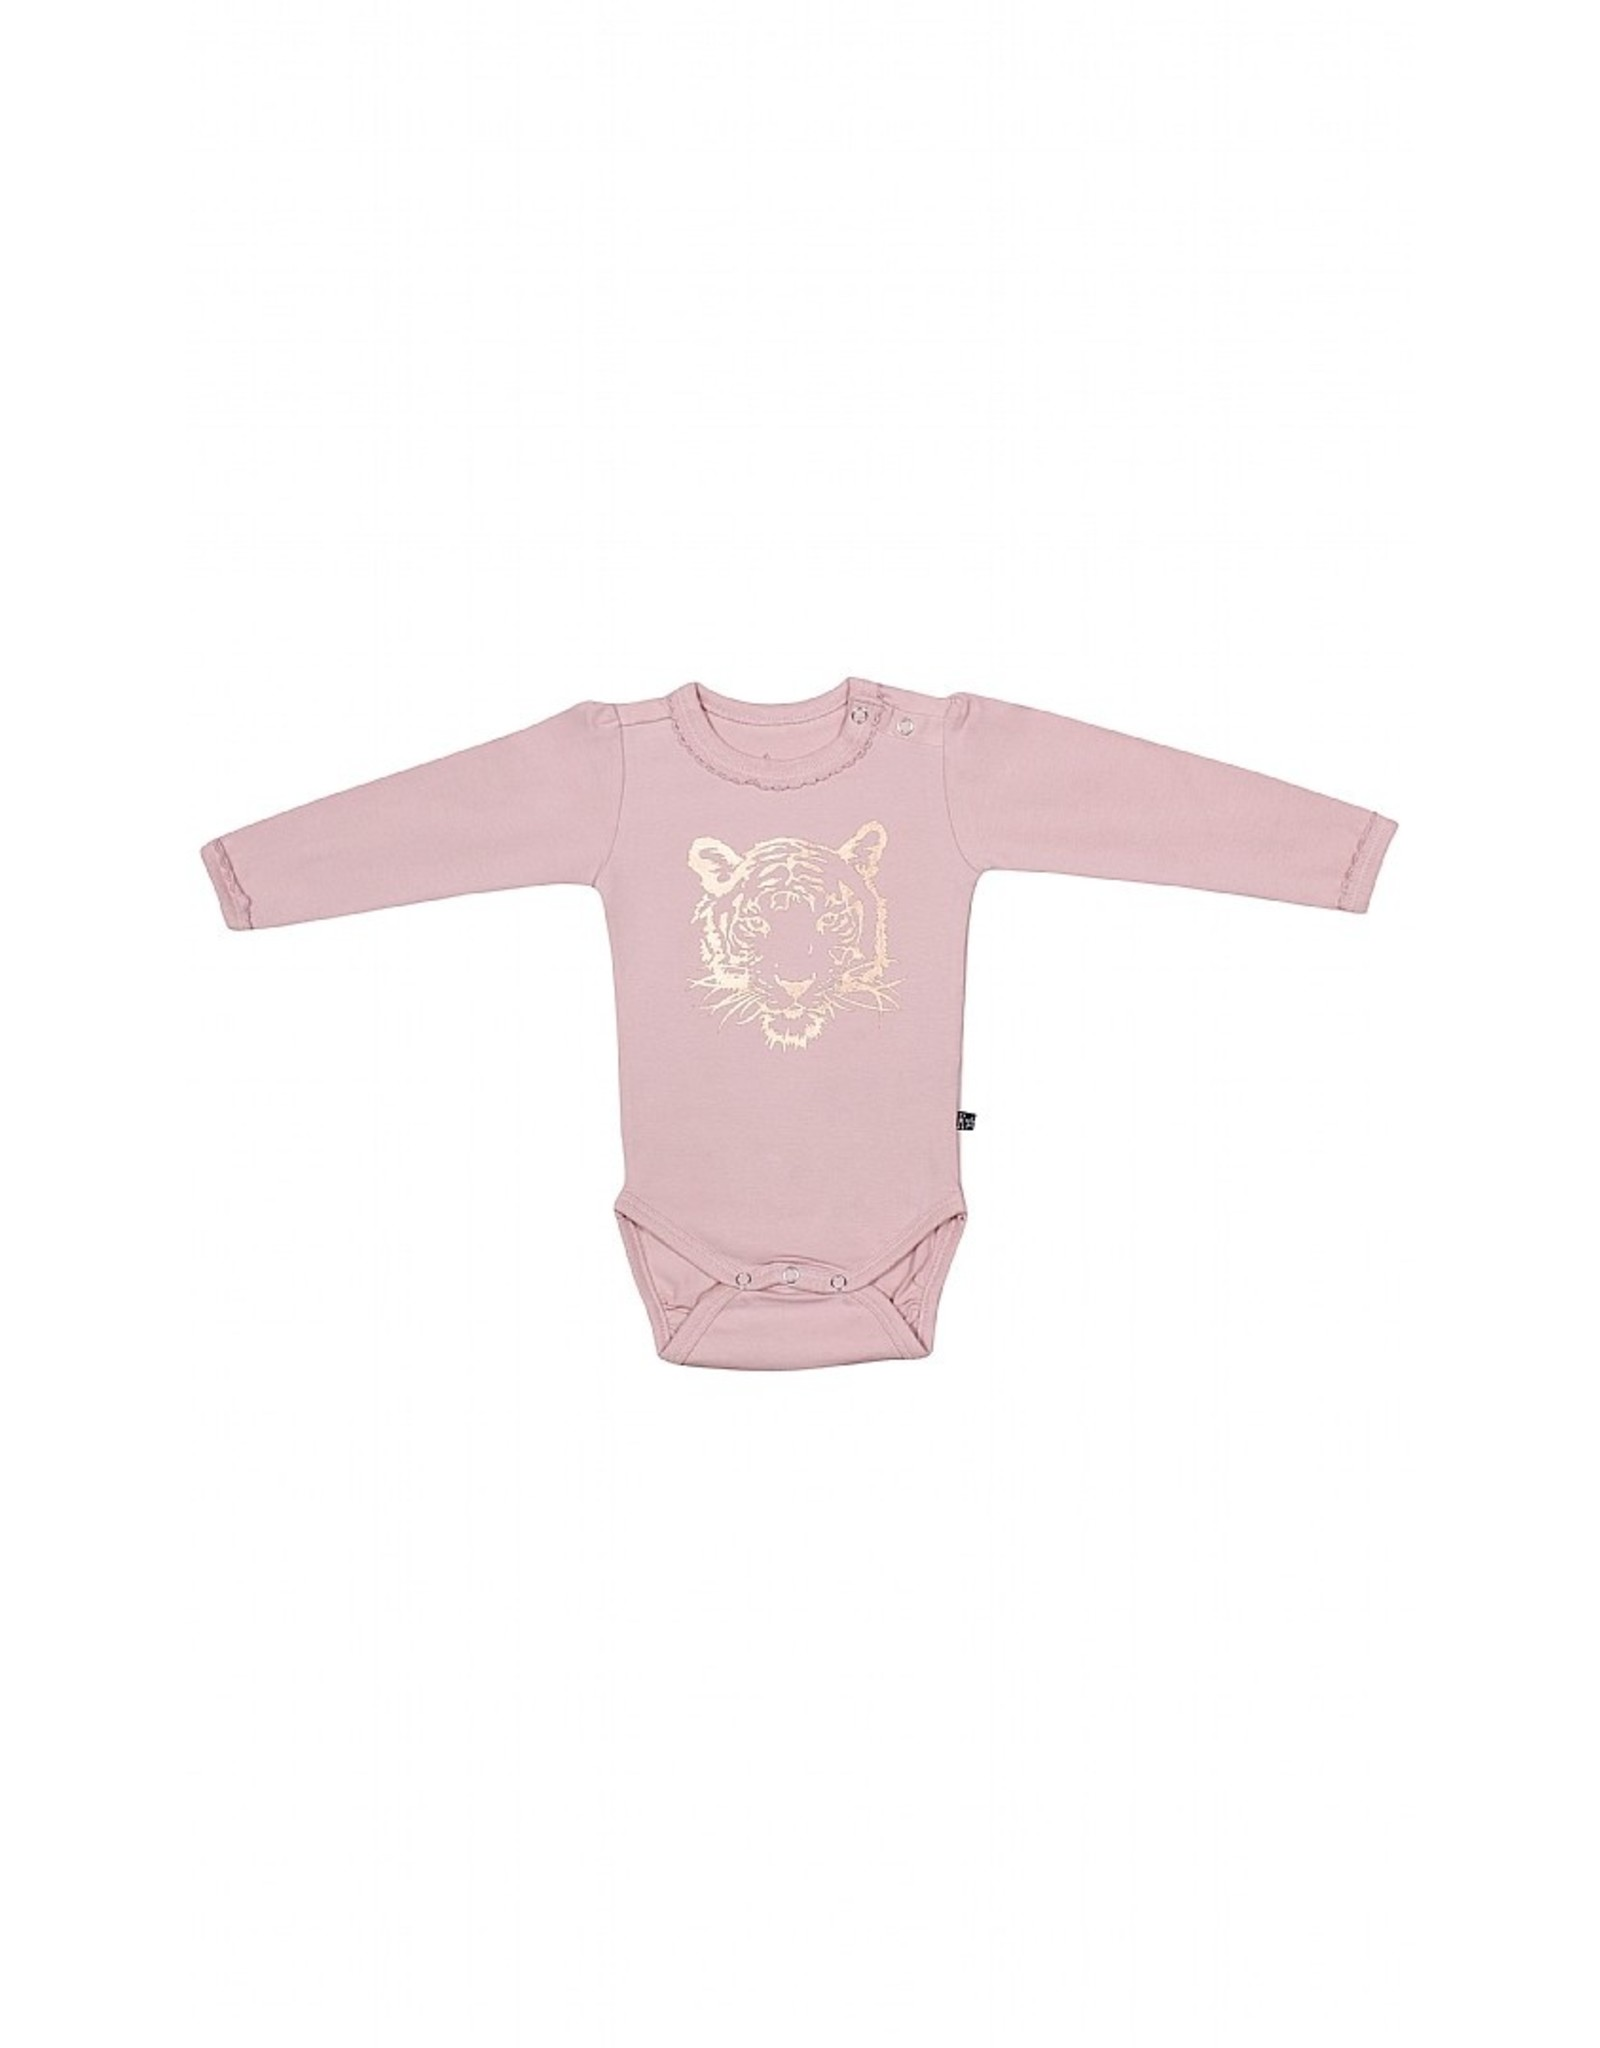 KIDS UP Kids Up Baby BODY Pink